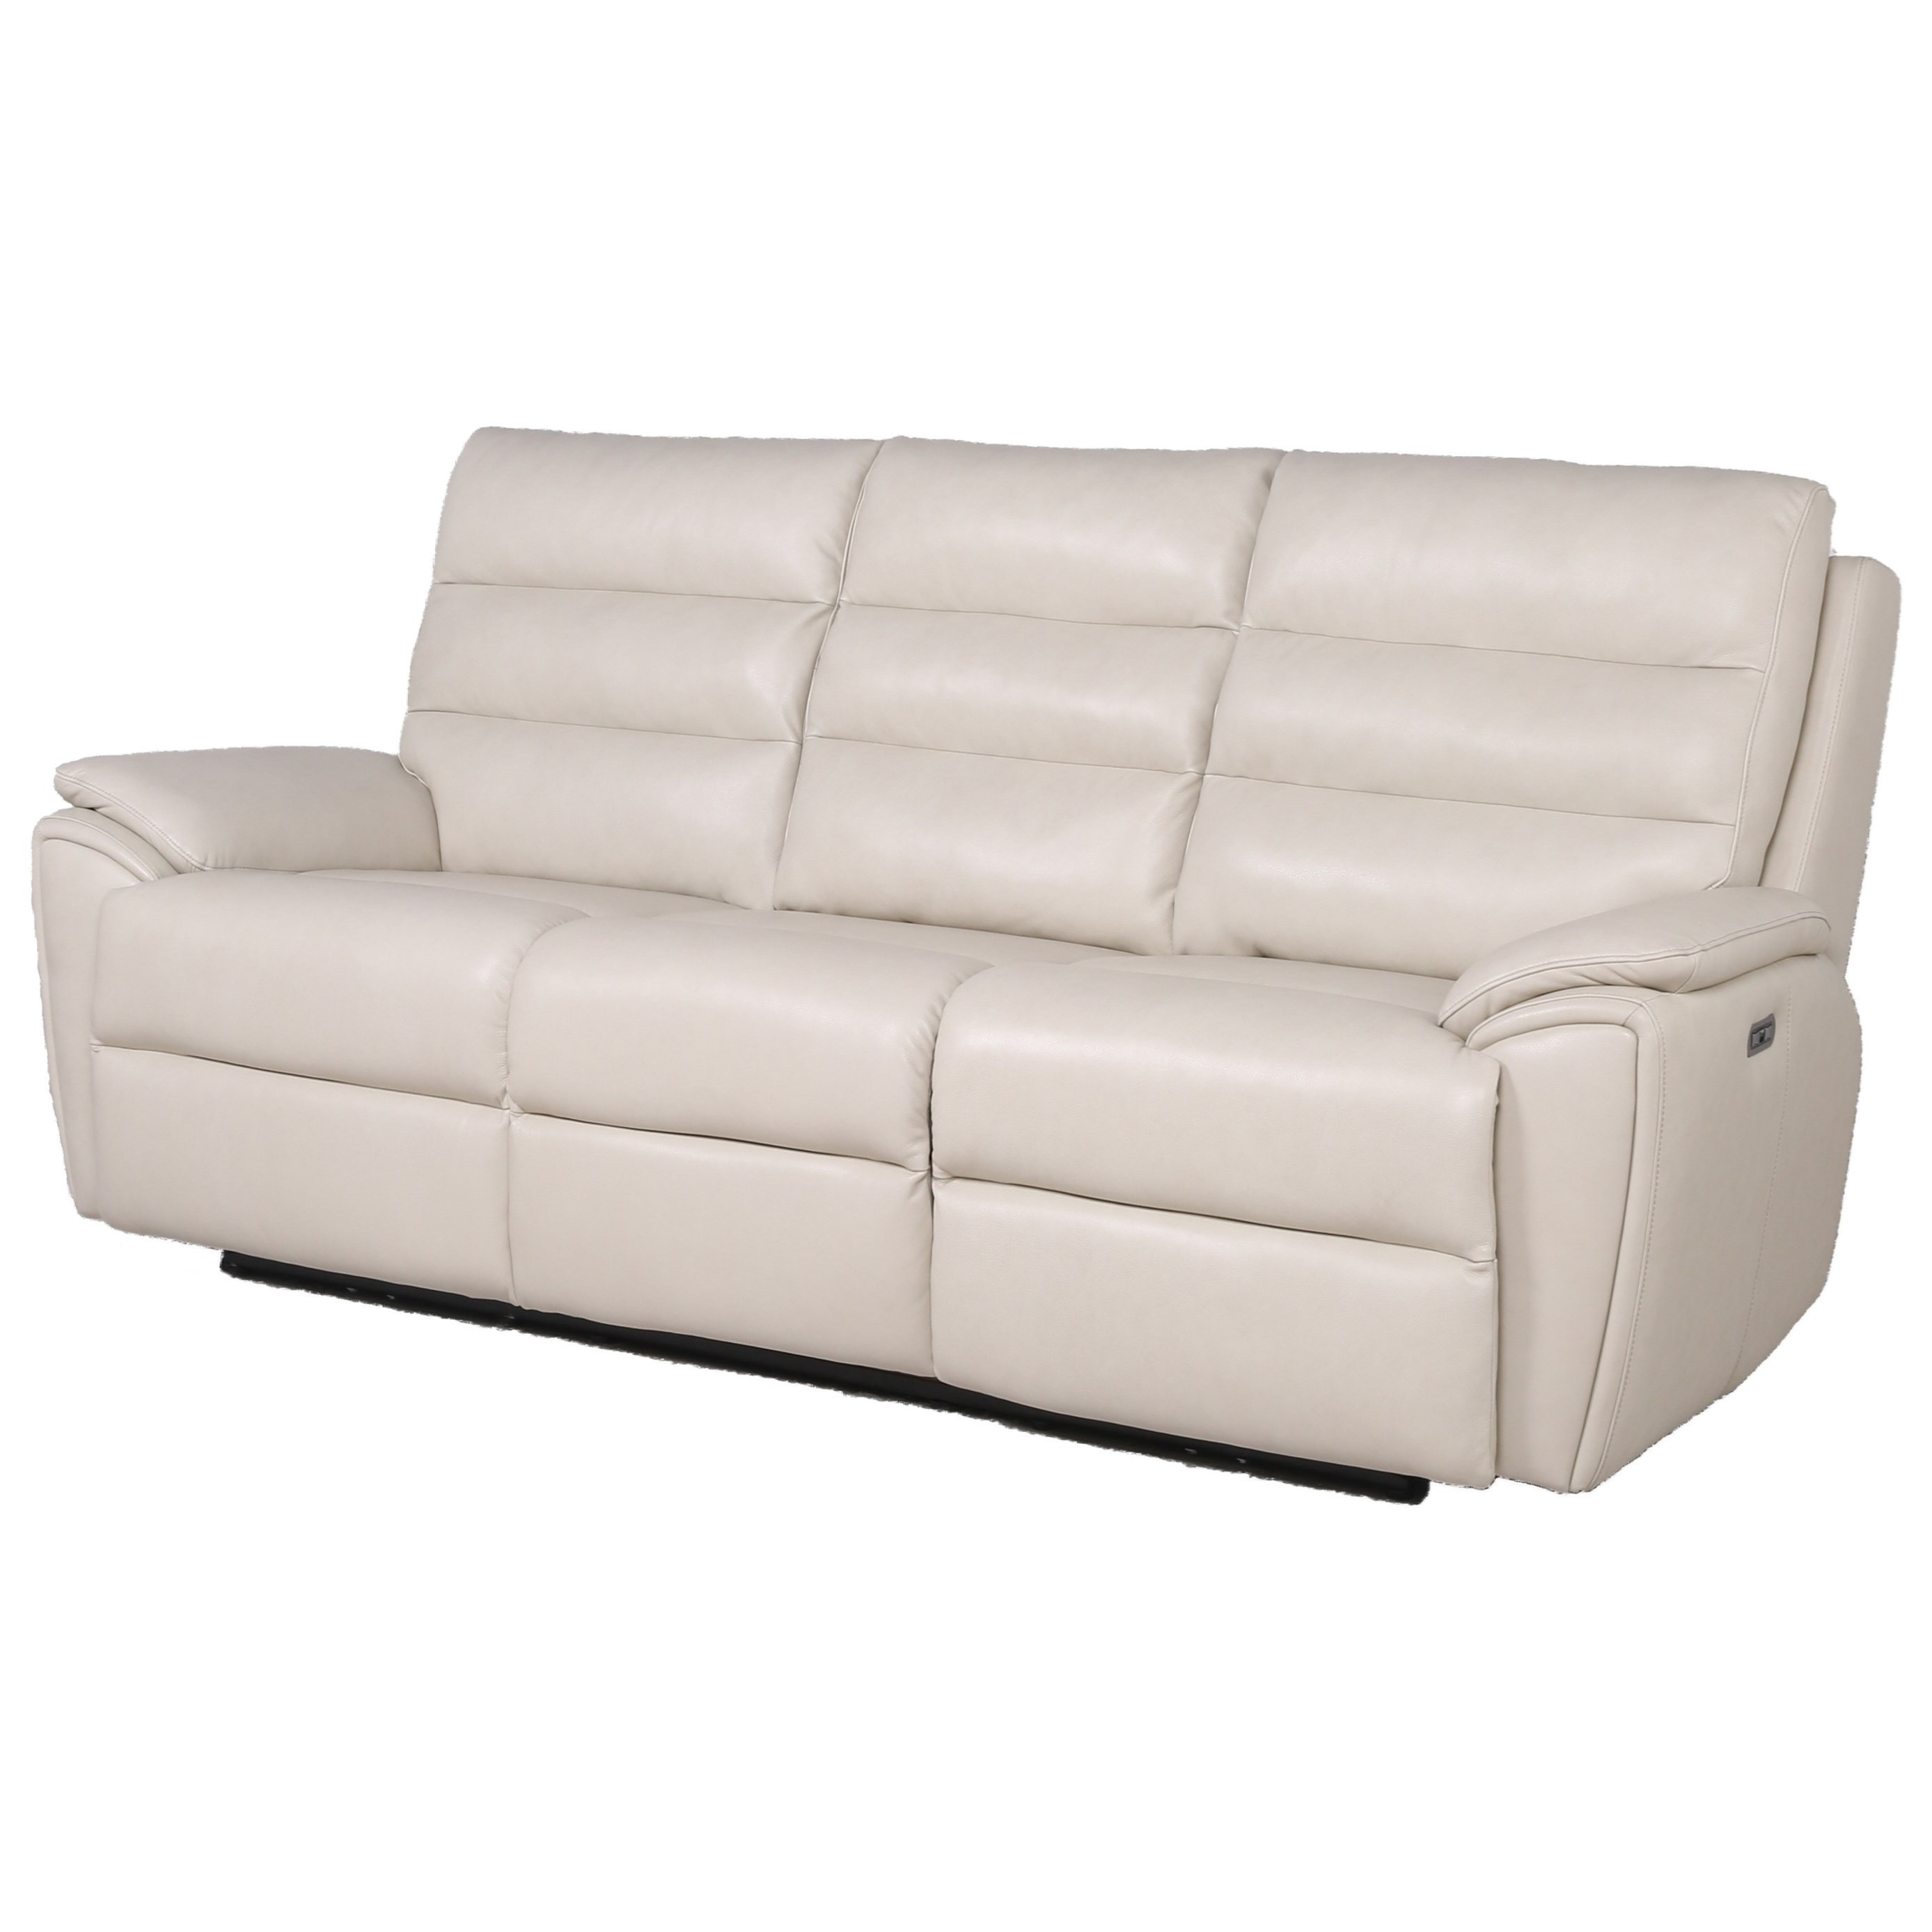 Duval Power Reclining Sofa by Steve Silver at Northeast Factory Direct